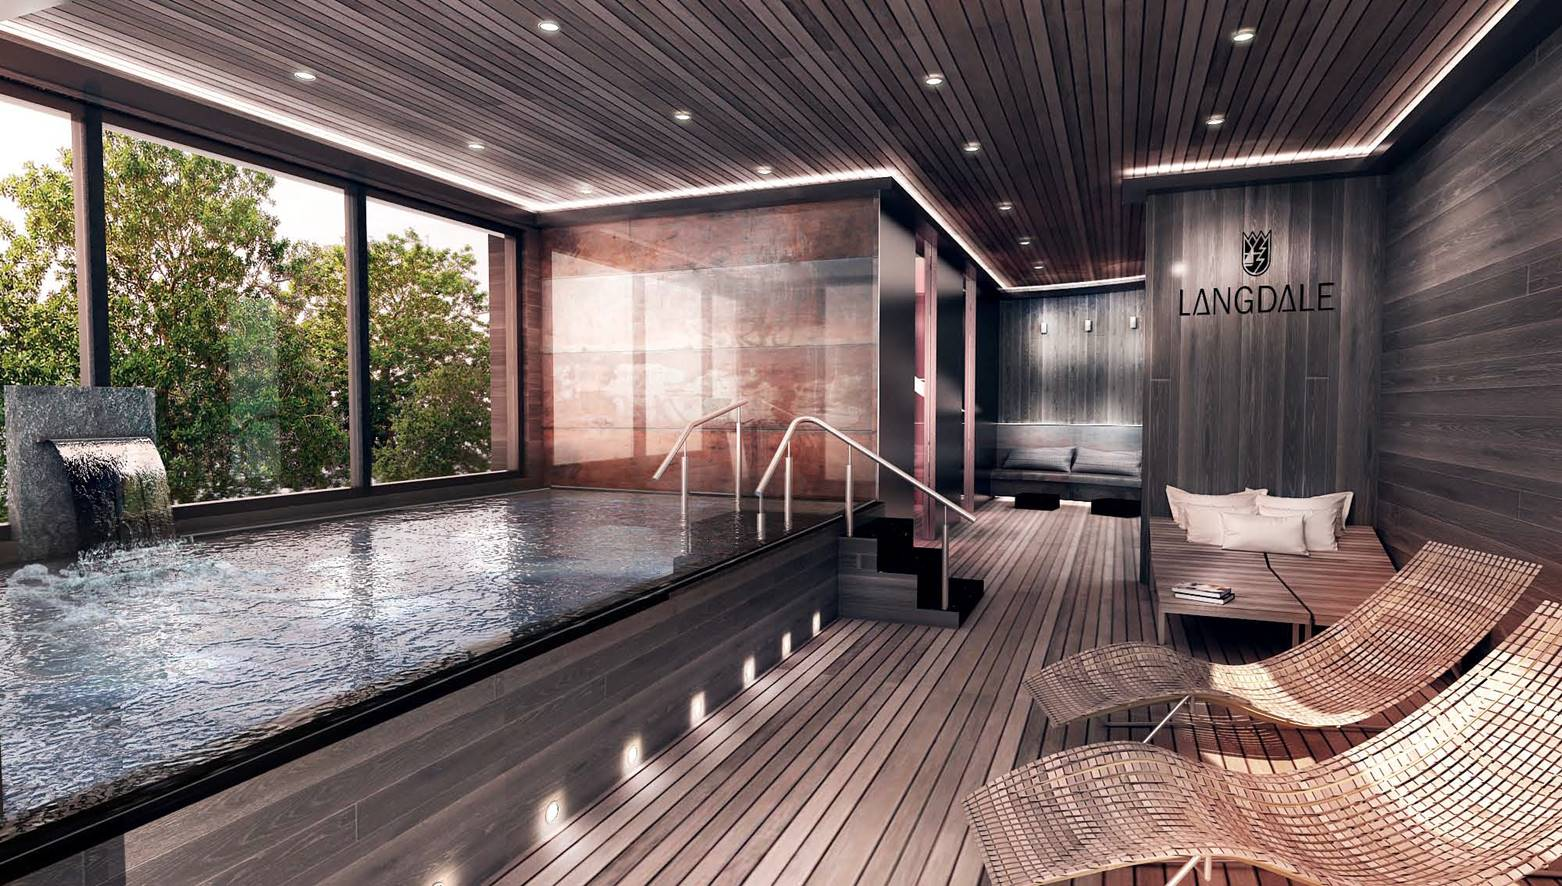 The Lake District's Langdale Estate Will Open New Spa This Winter